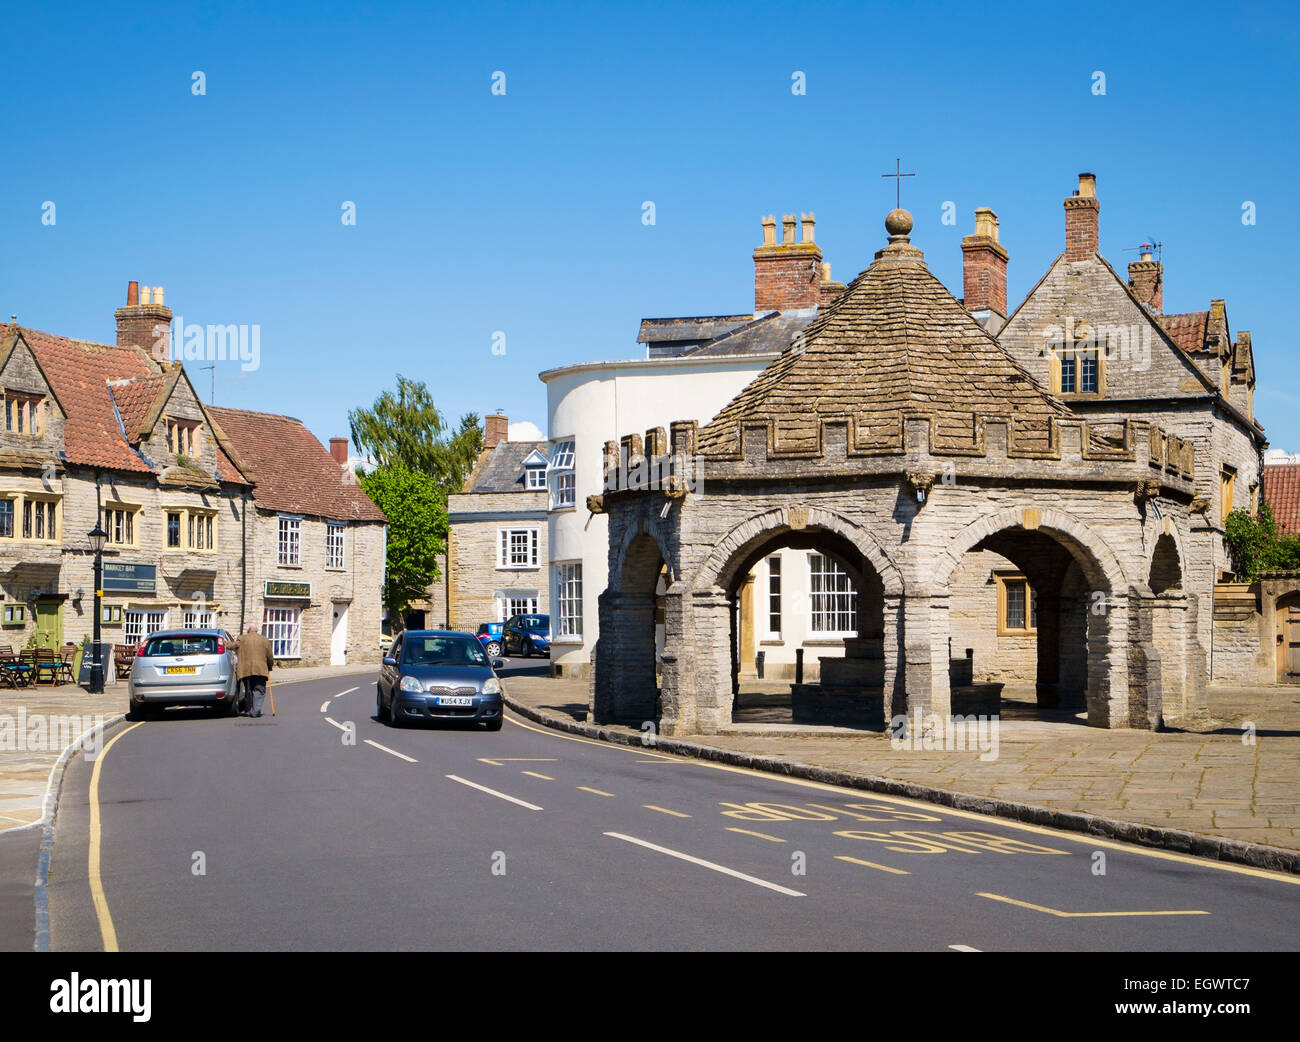 Somerton - a beautiful old small market town in Somerset, England, UK with the ancient market cross - Stock Image